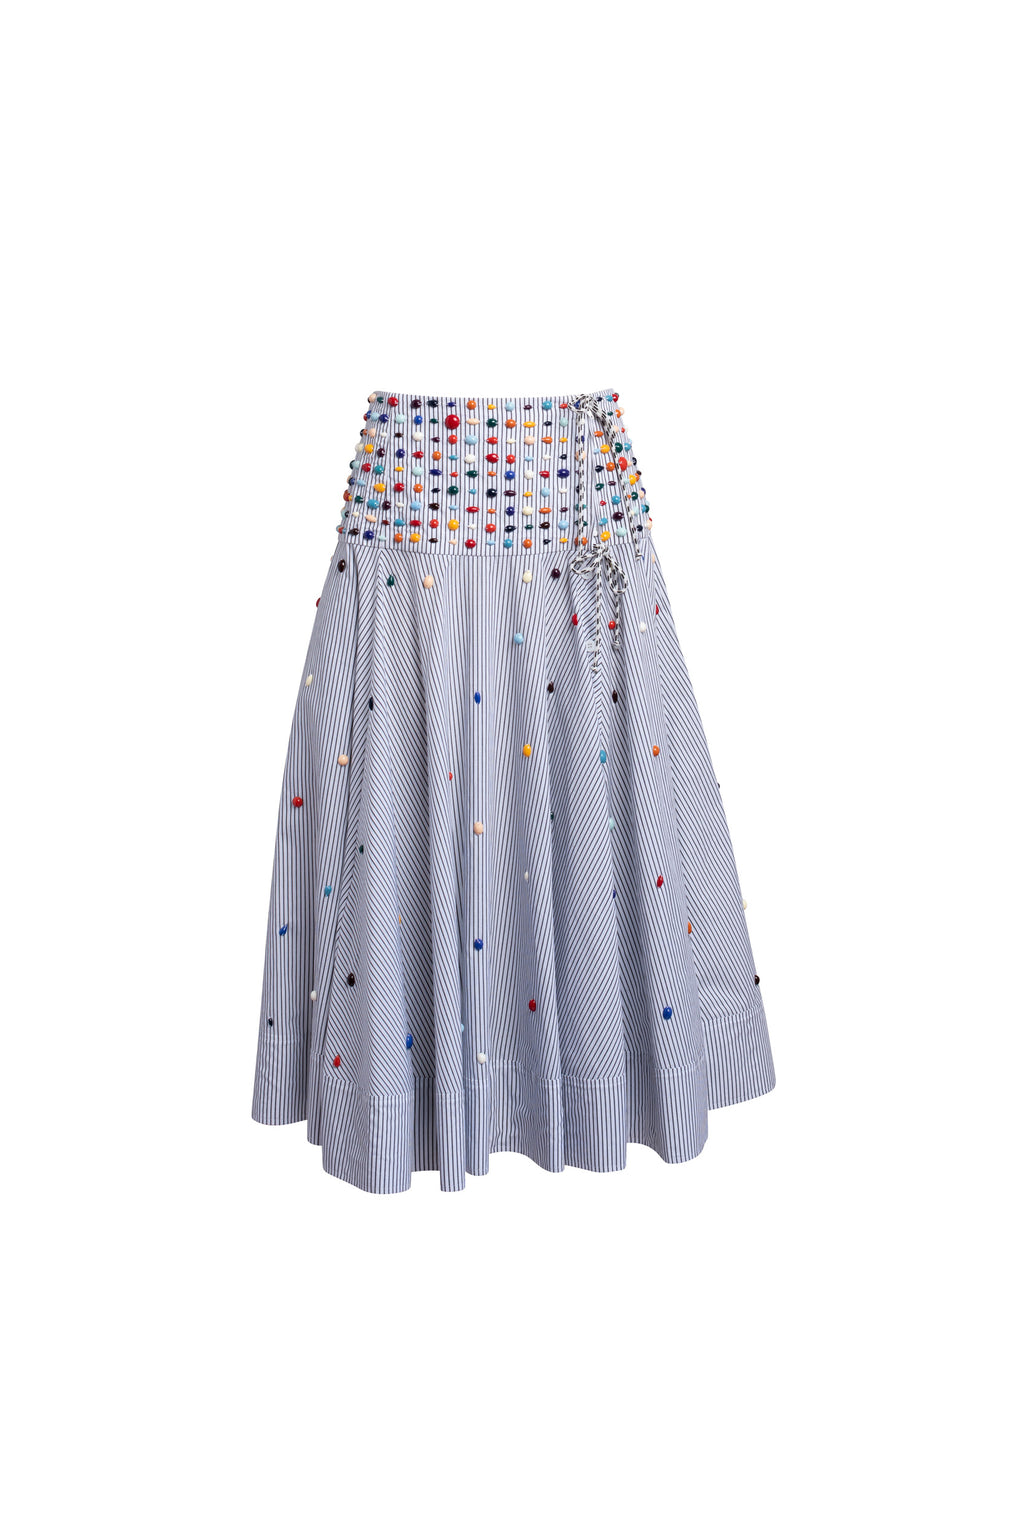 Beaded Full Circle Skirt